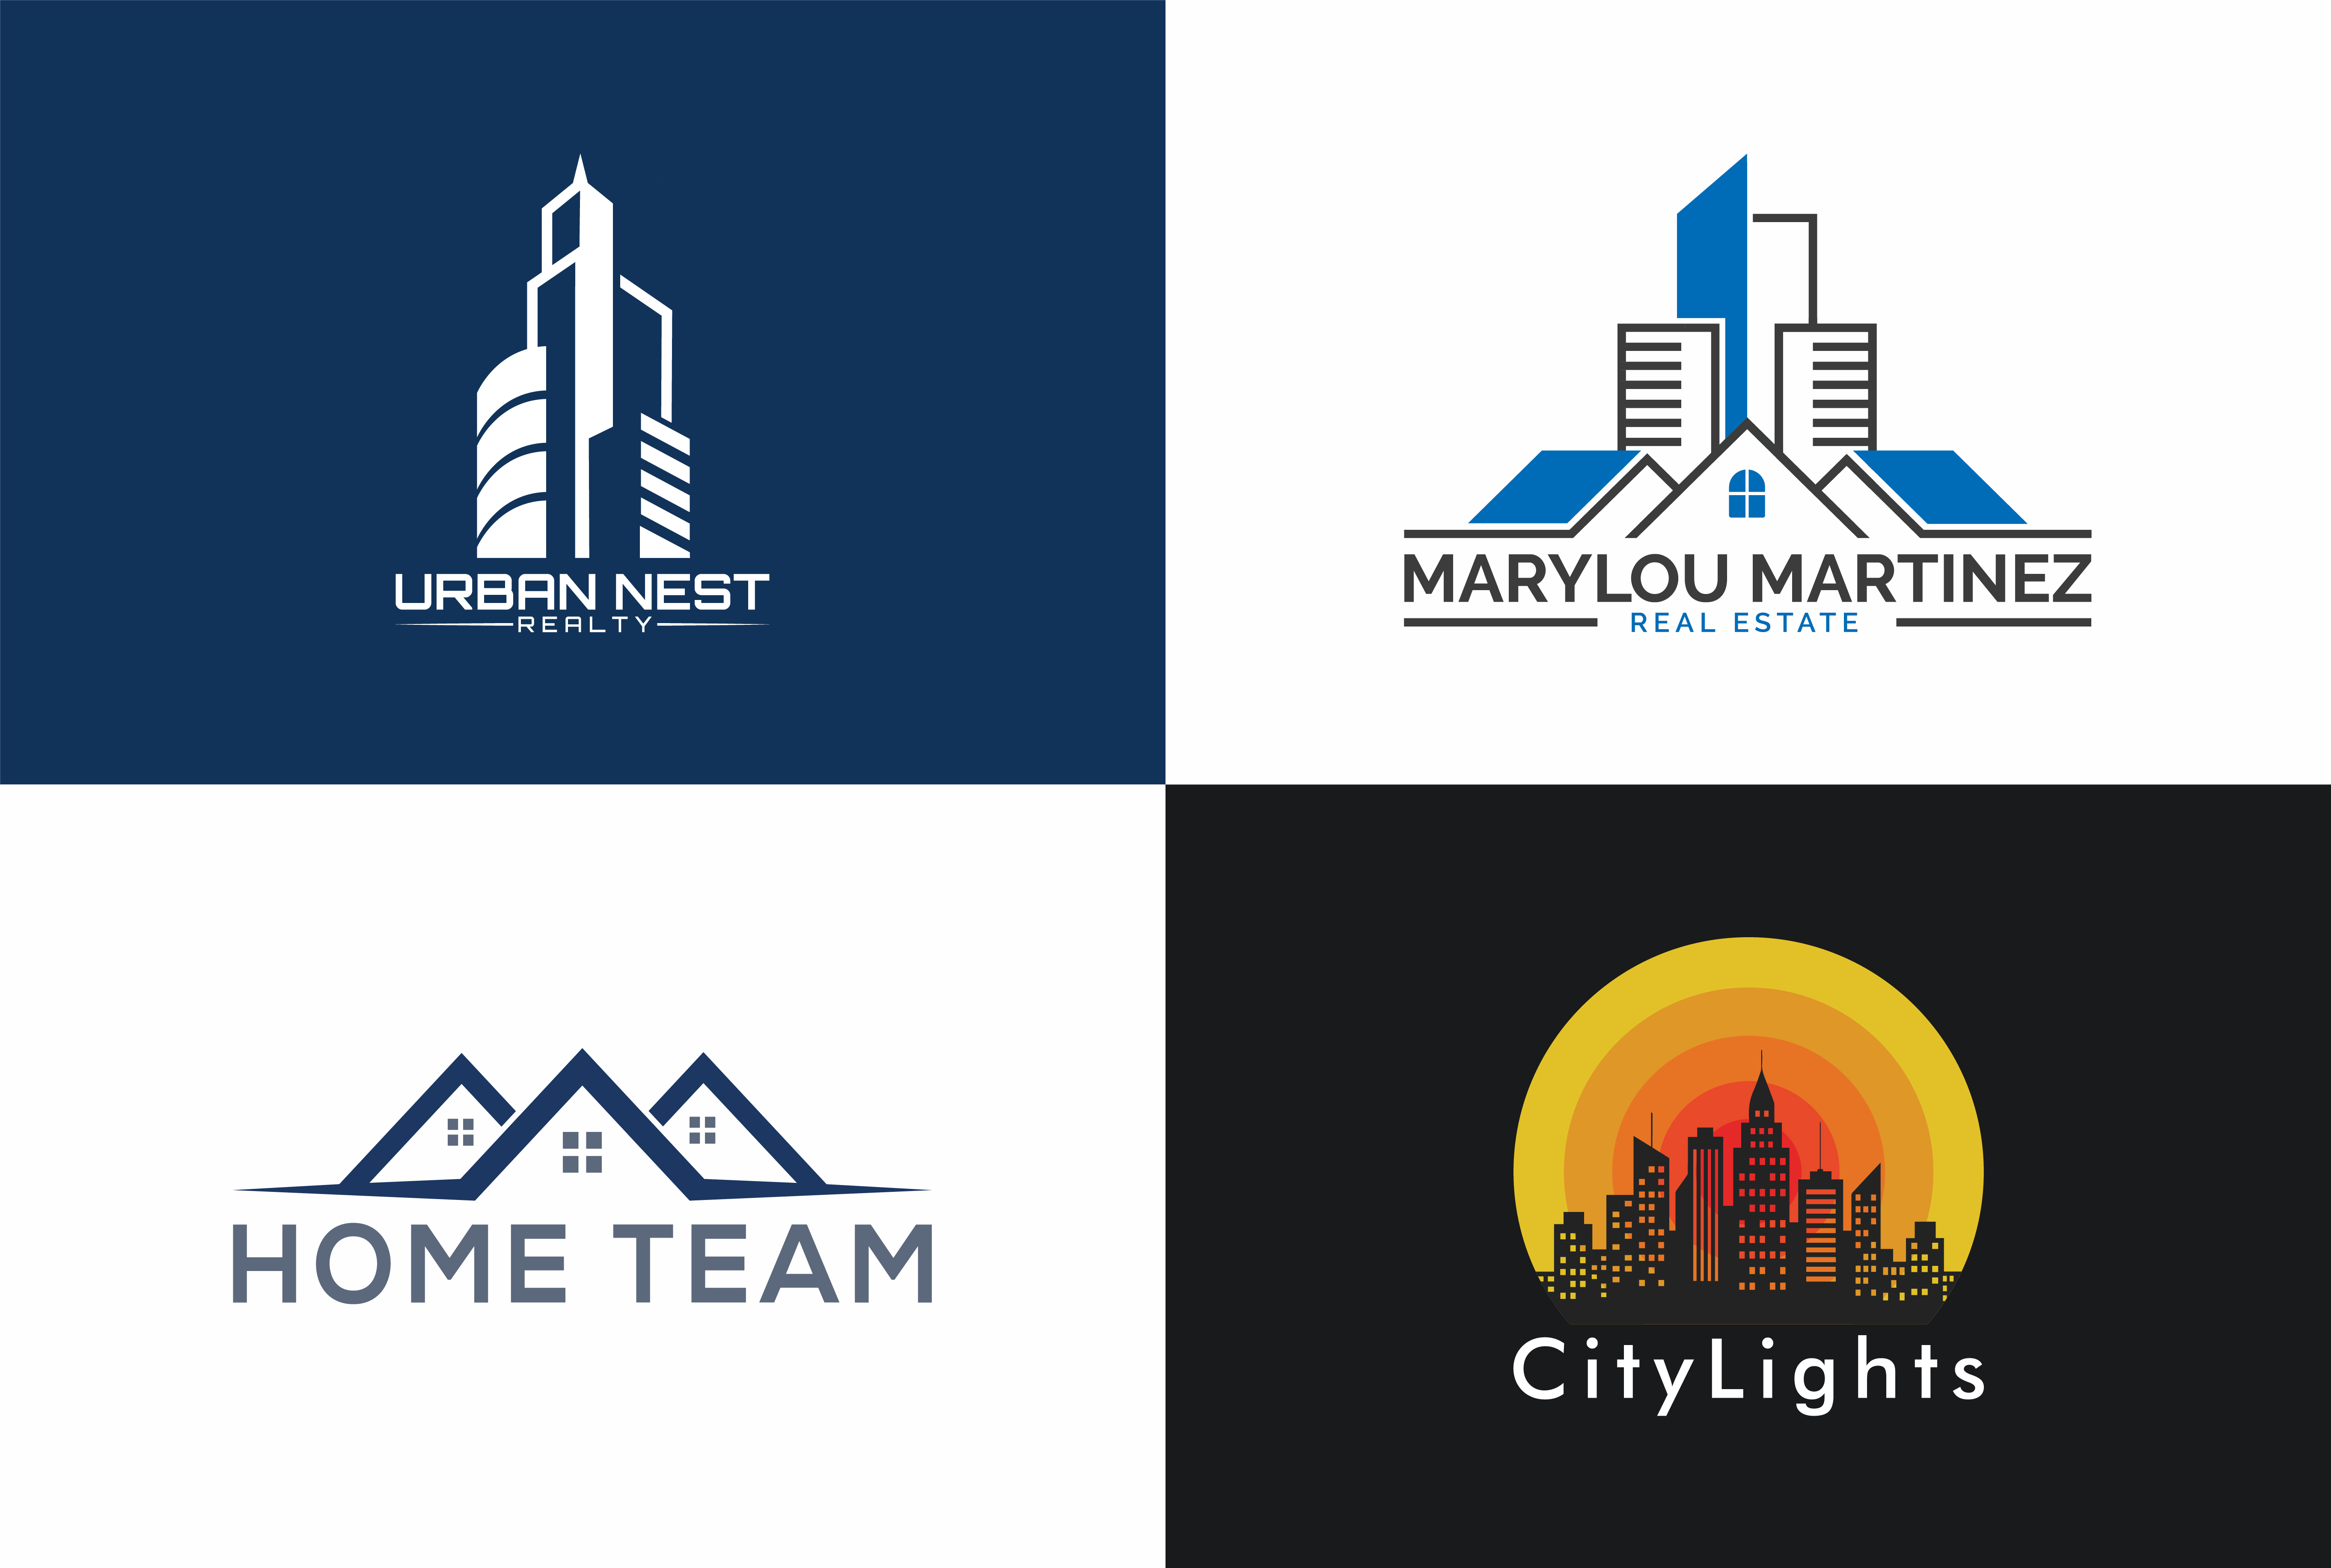 I will design minimalist realtor real estate property professional Business logo in 24hours